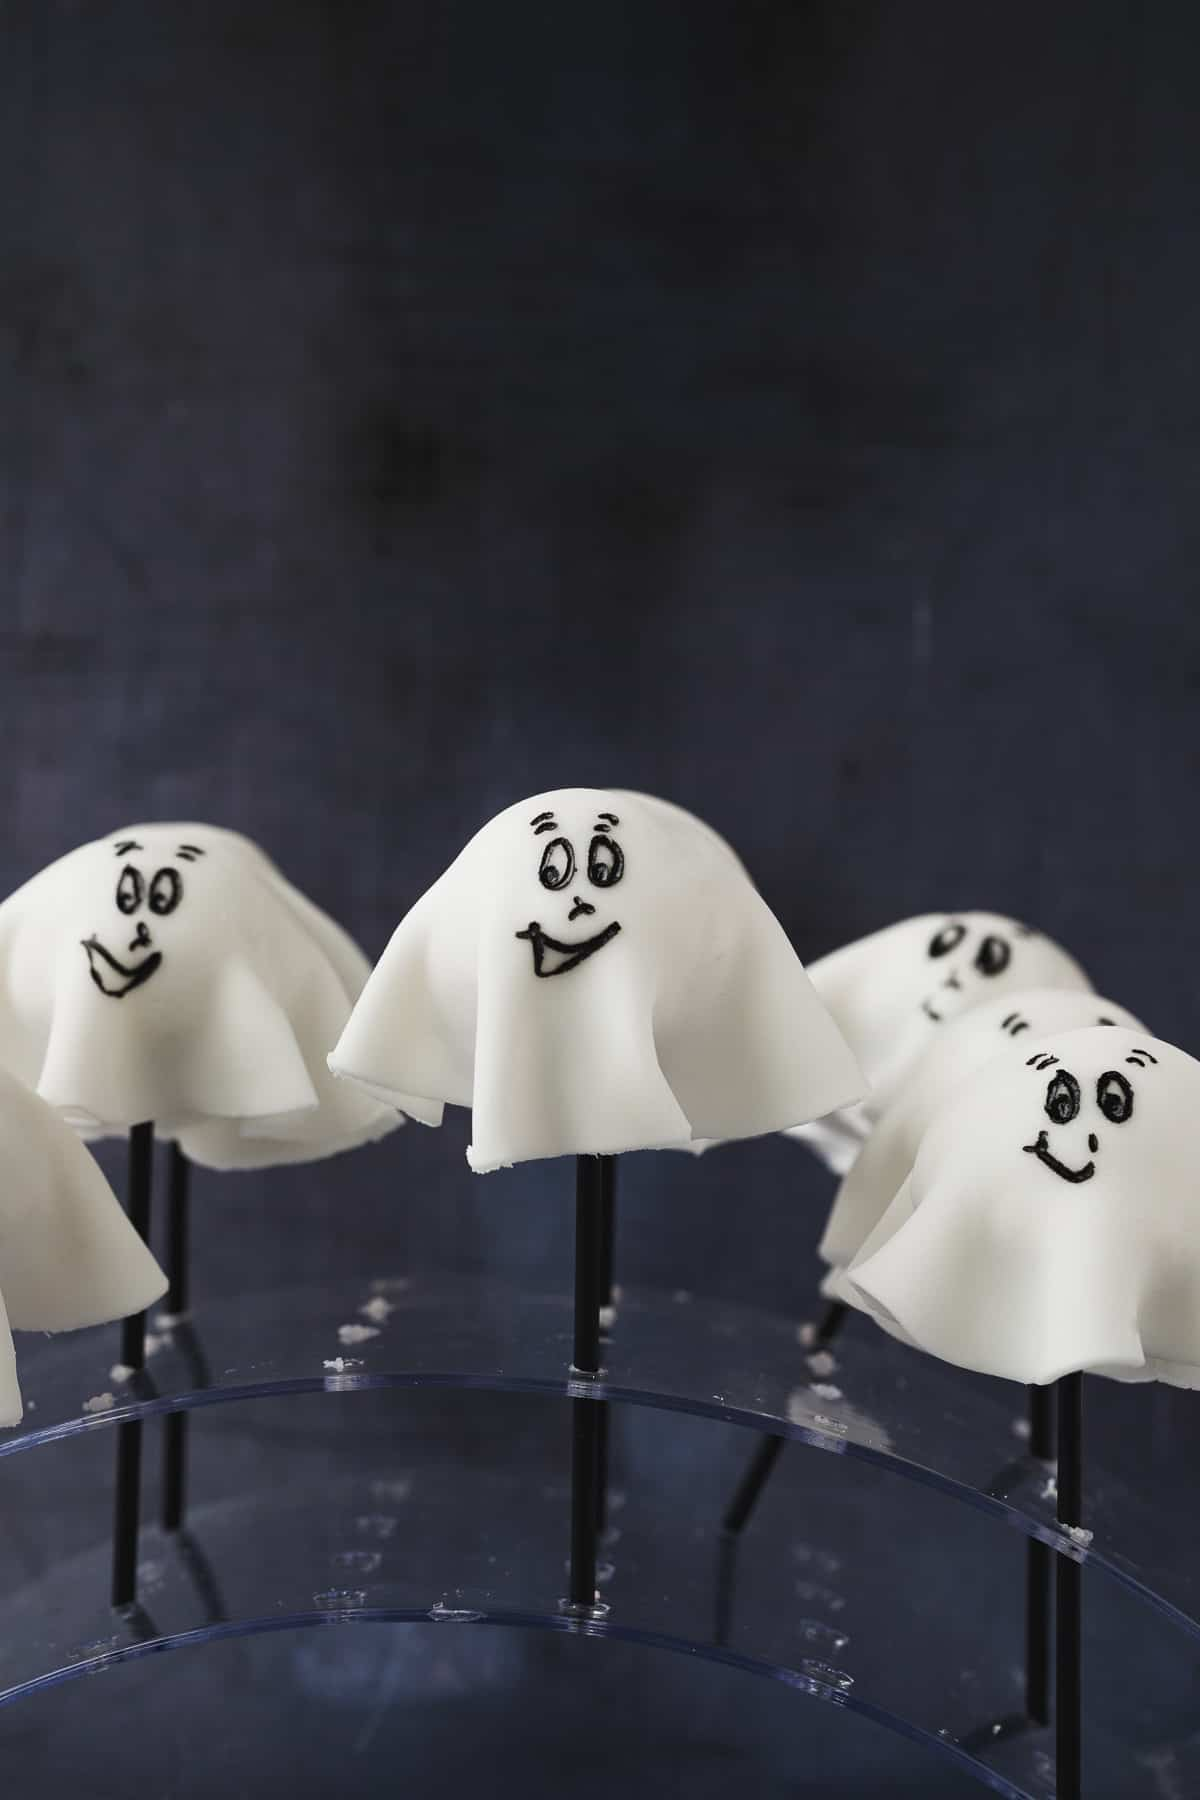 Chocolate cake pops covered in white fondant icing with a face drawn on to look like a friendly ghost.